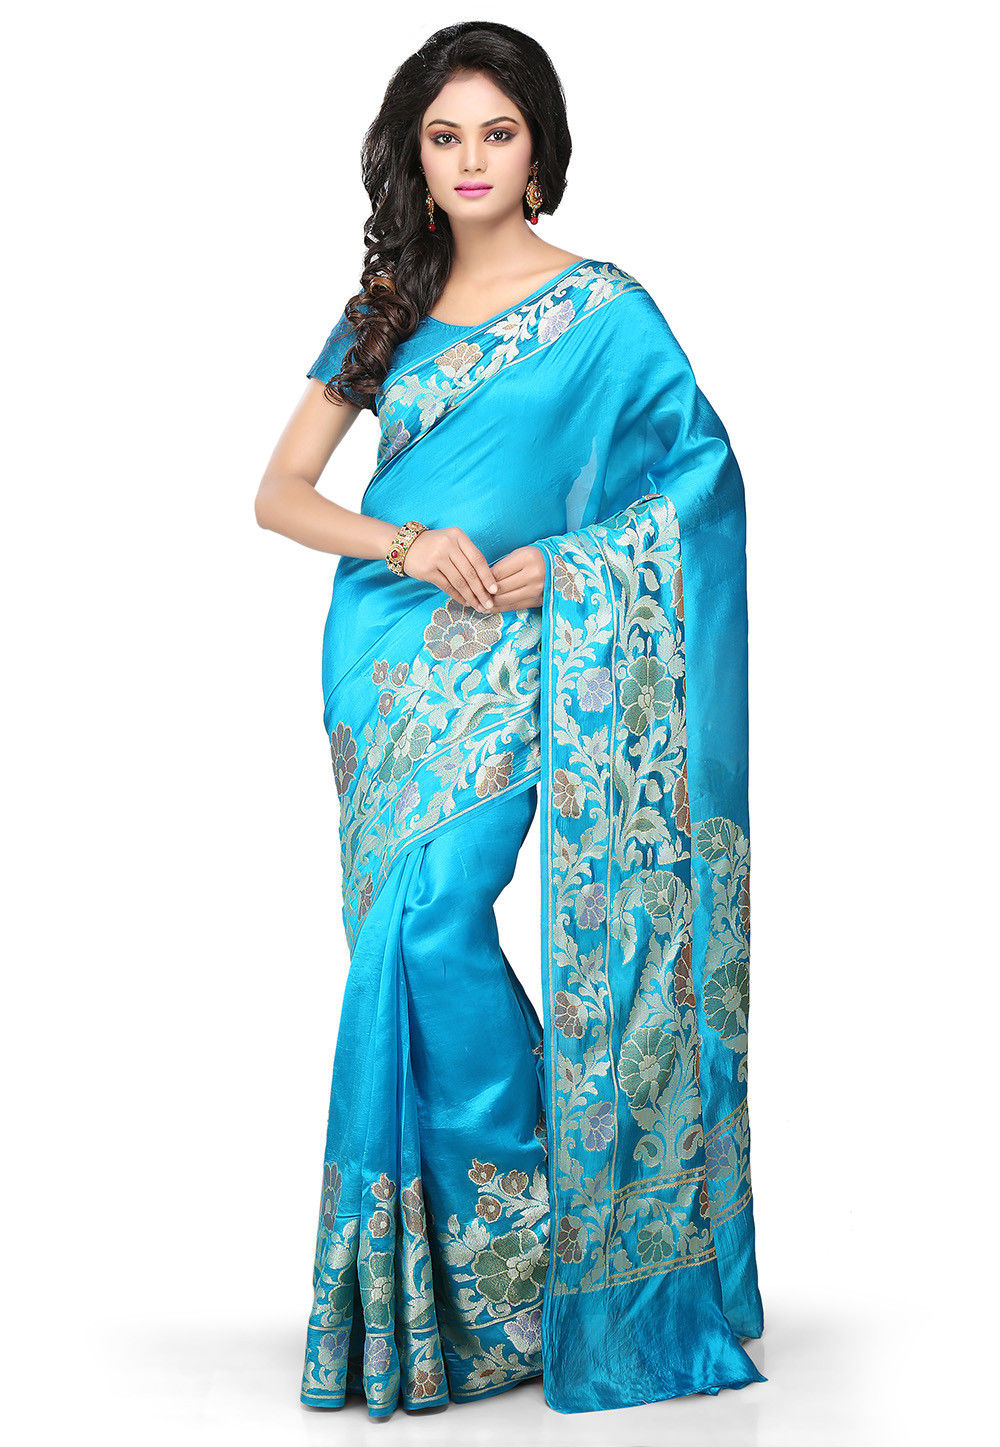 Woven Pure Tussar Silk Banarasi Saree in Blue